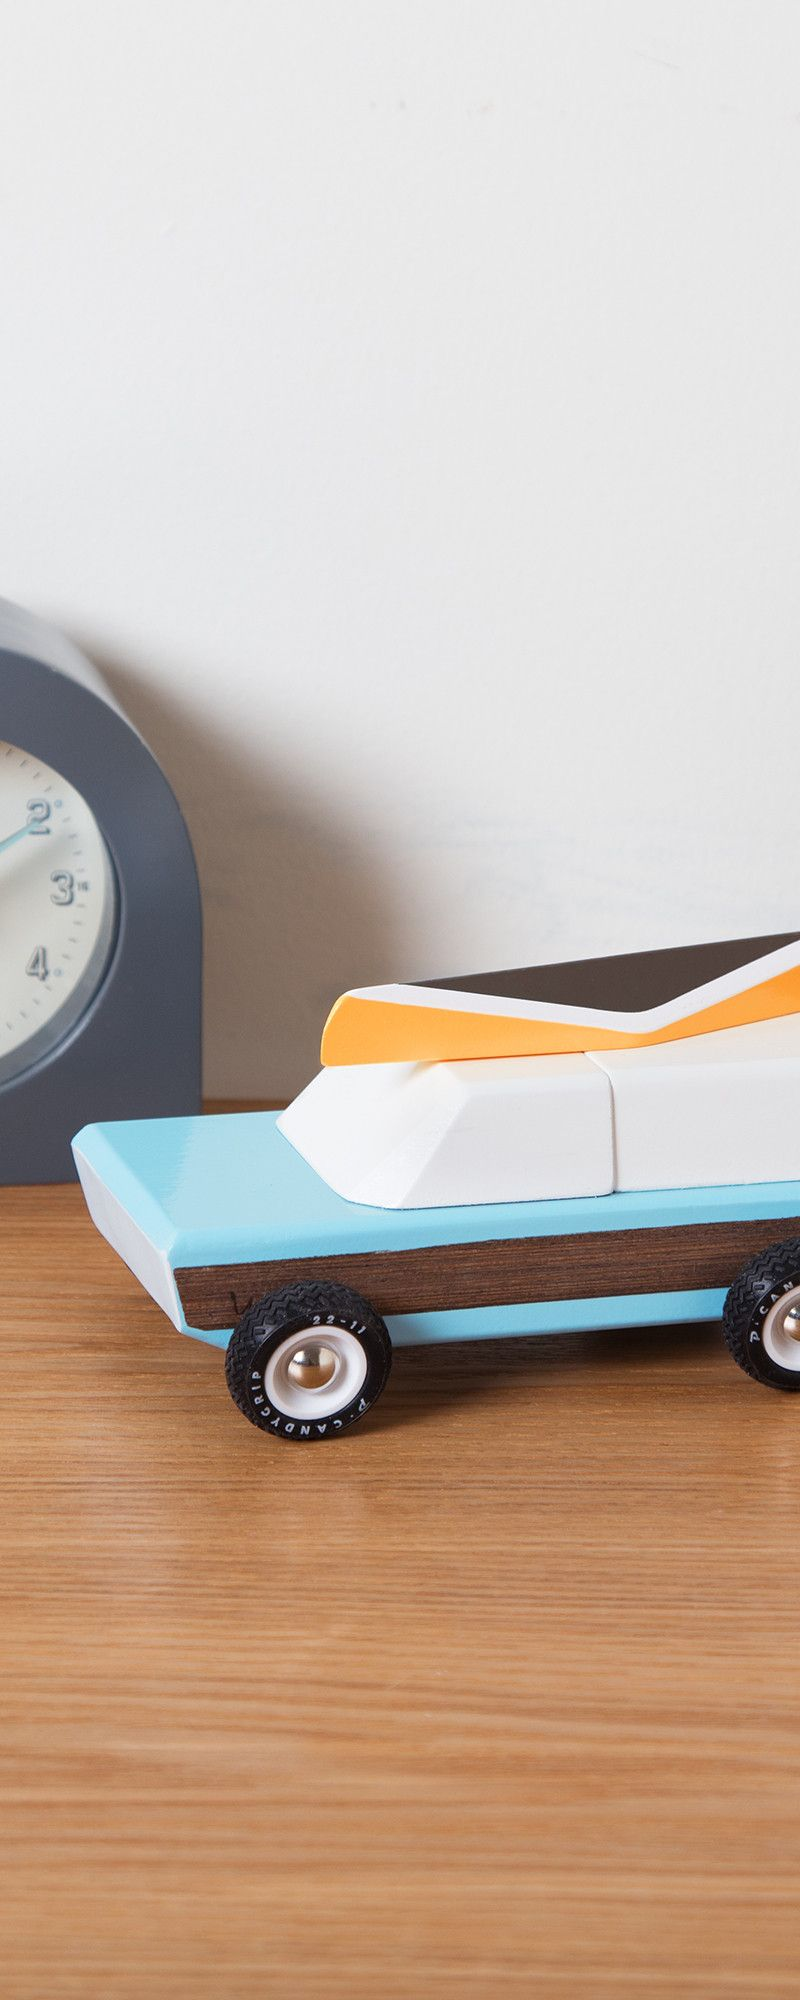 Vintage Model Car by Candylab Toys | Pinterest | Wooden car and Toy